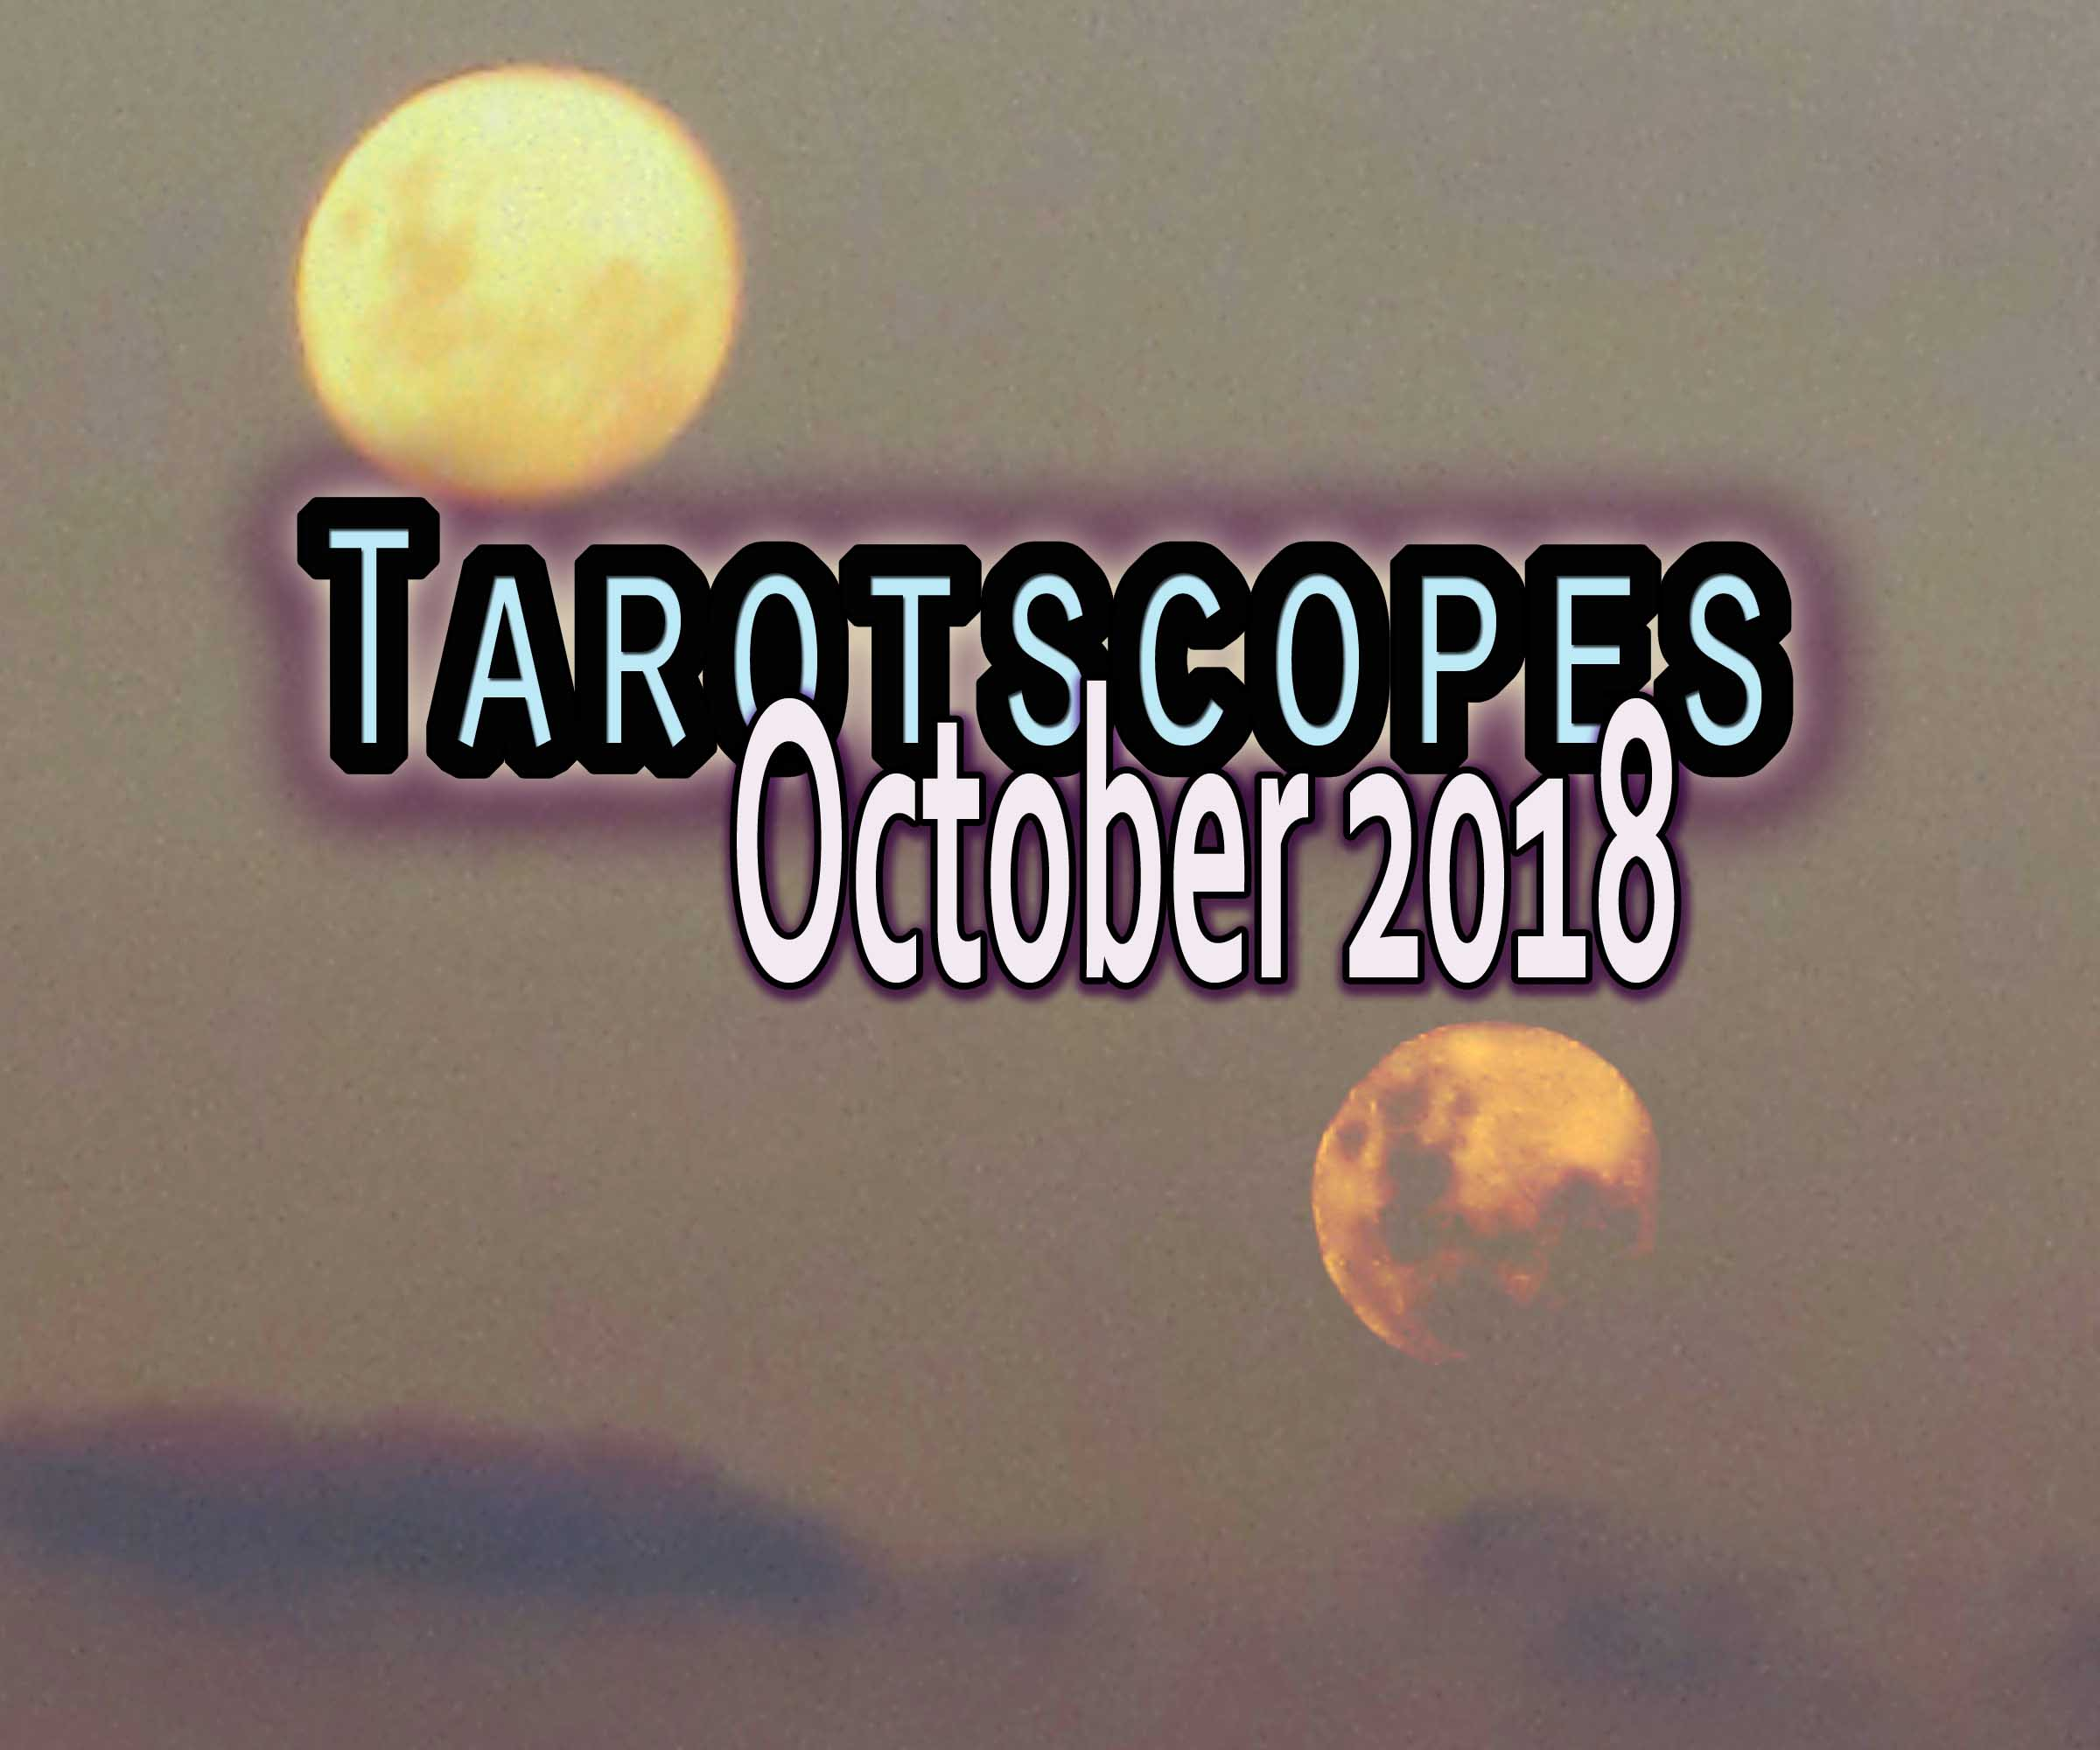 Tarotscopes October 2018